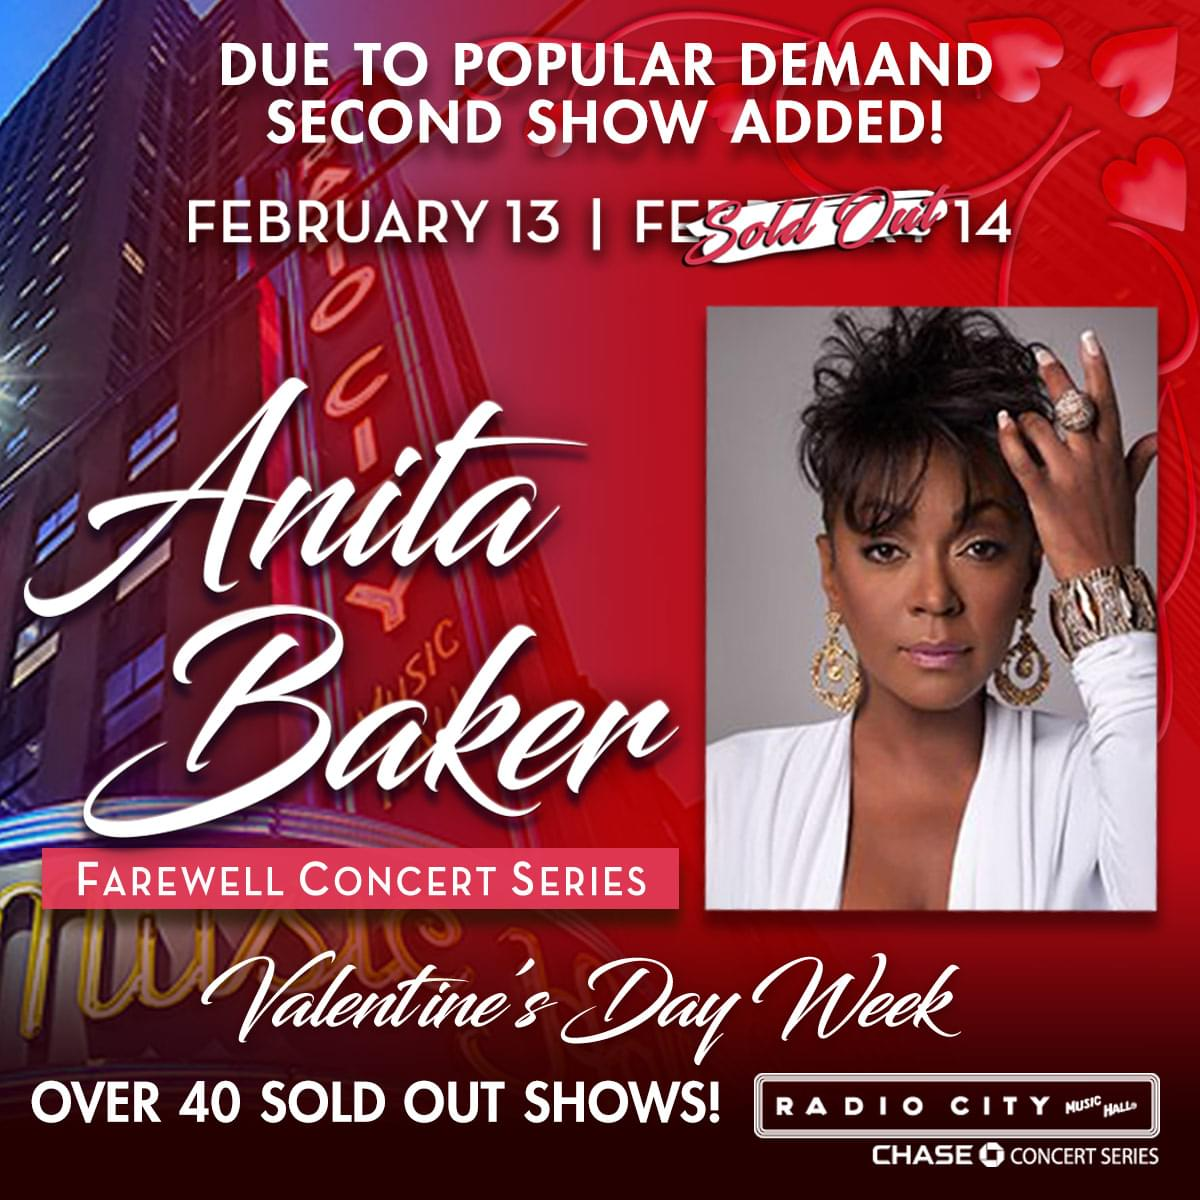 Win Tickets to See Anita Baker!